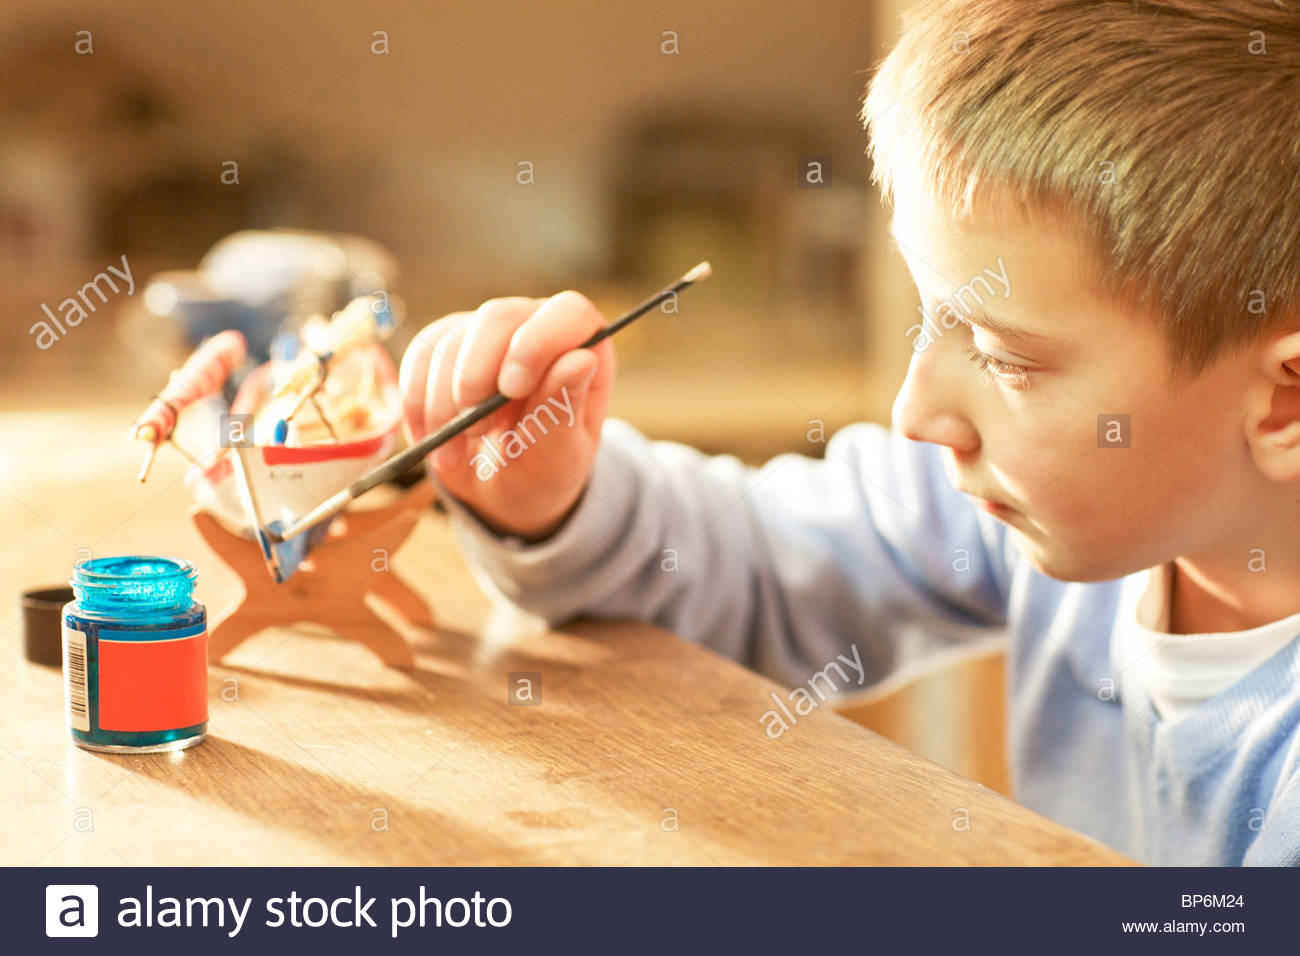 Young boy painting wooden craft - Stock Image